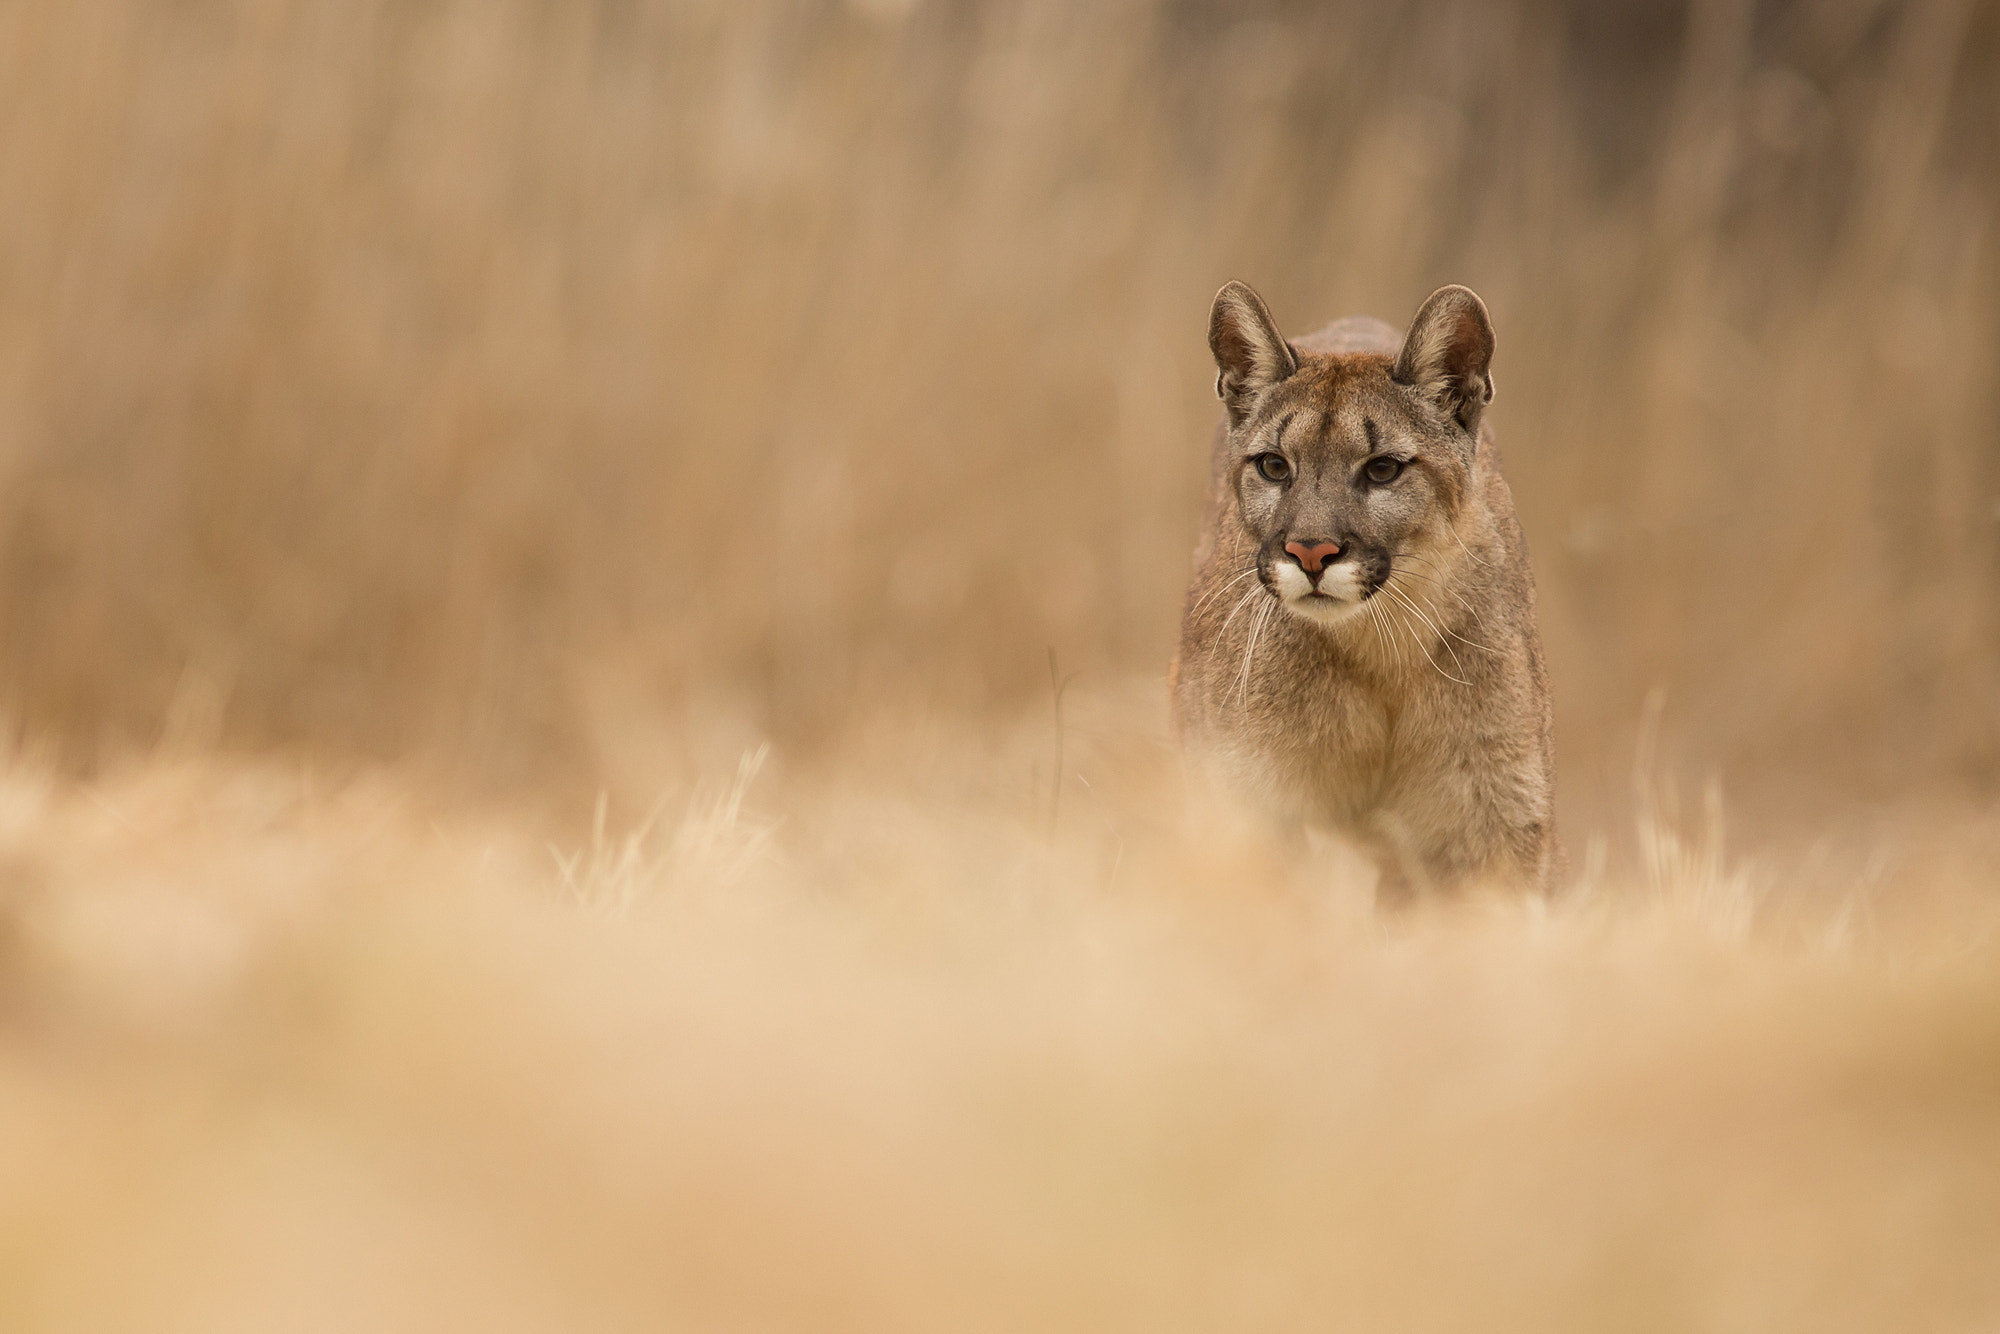 Photograph Puma Concolor by Milan Zygmunt on 500px